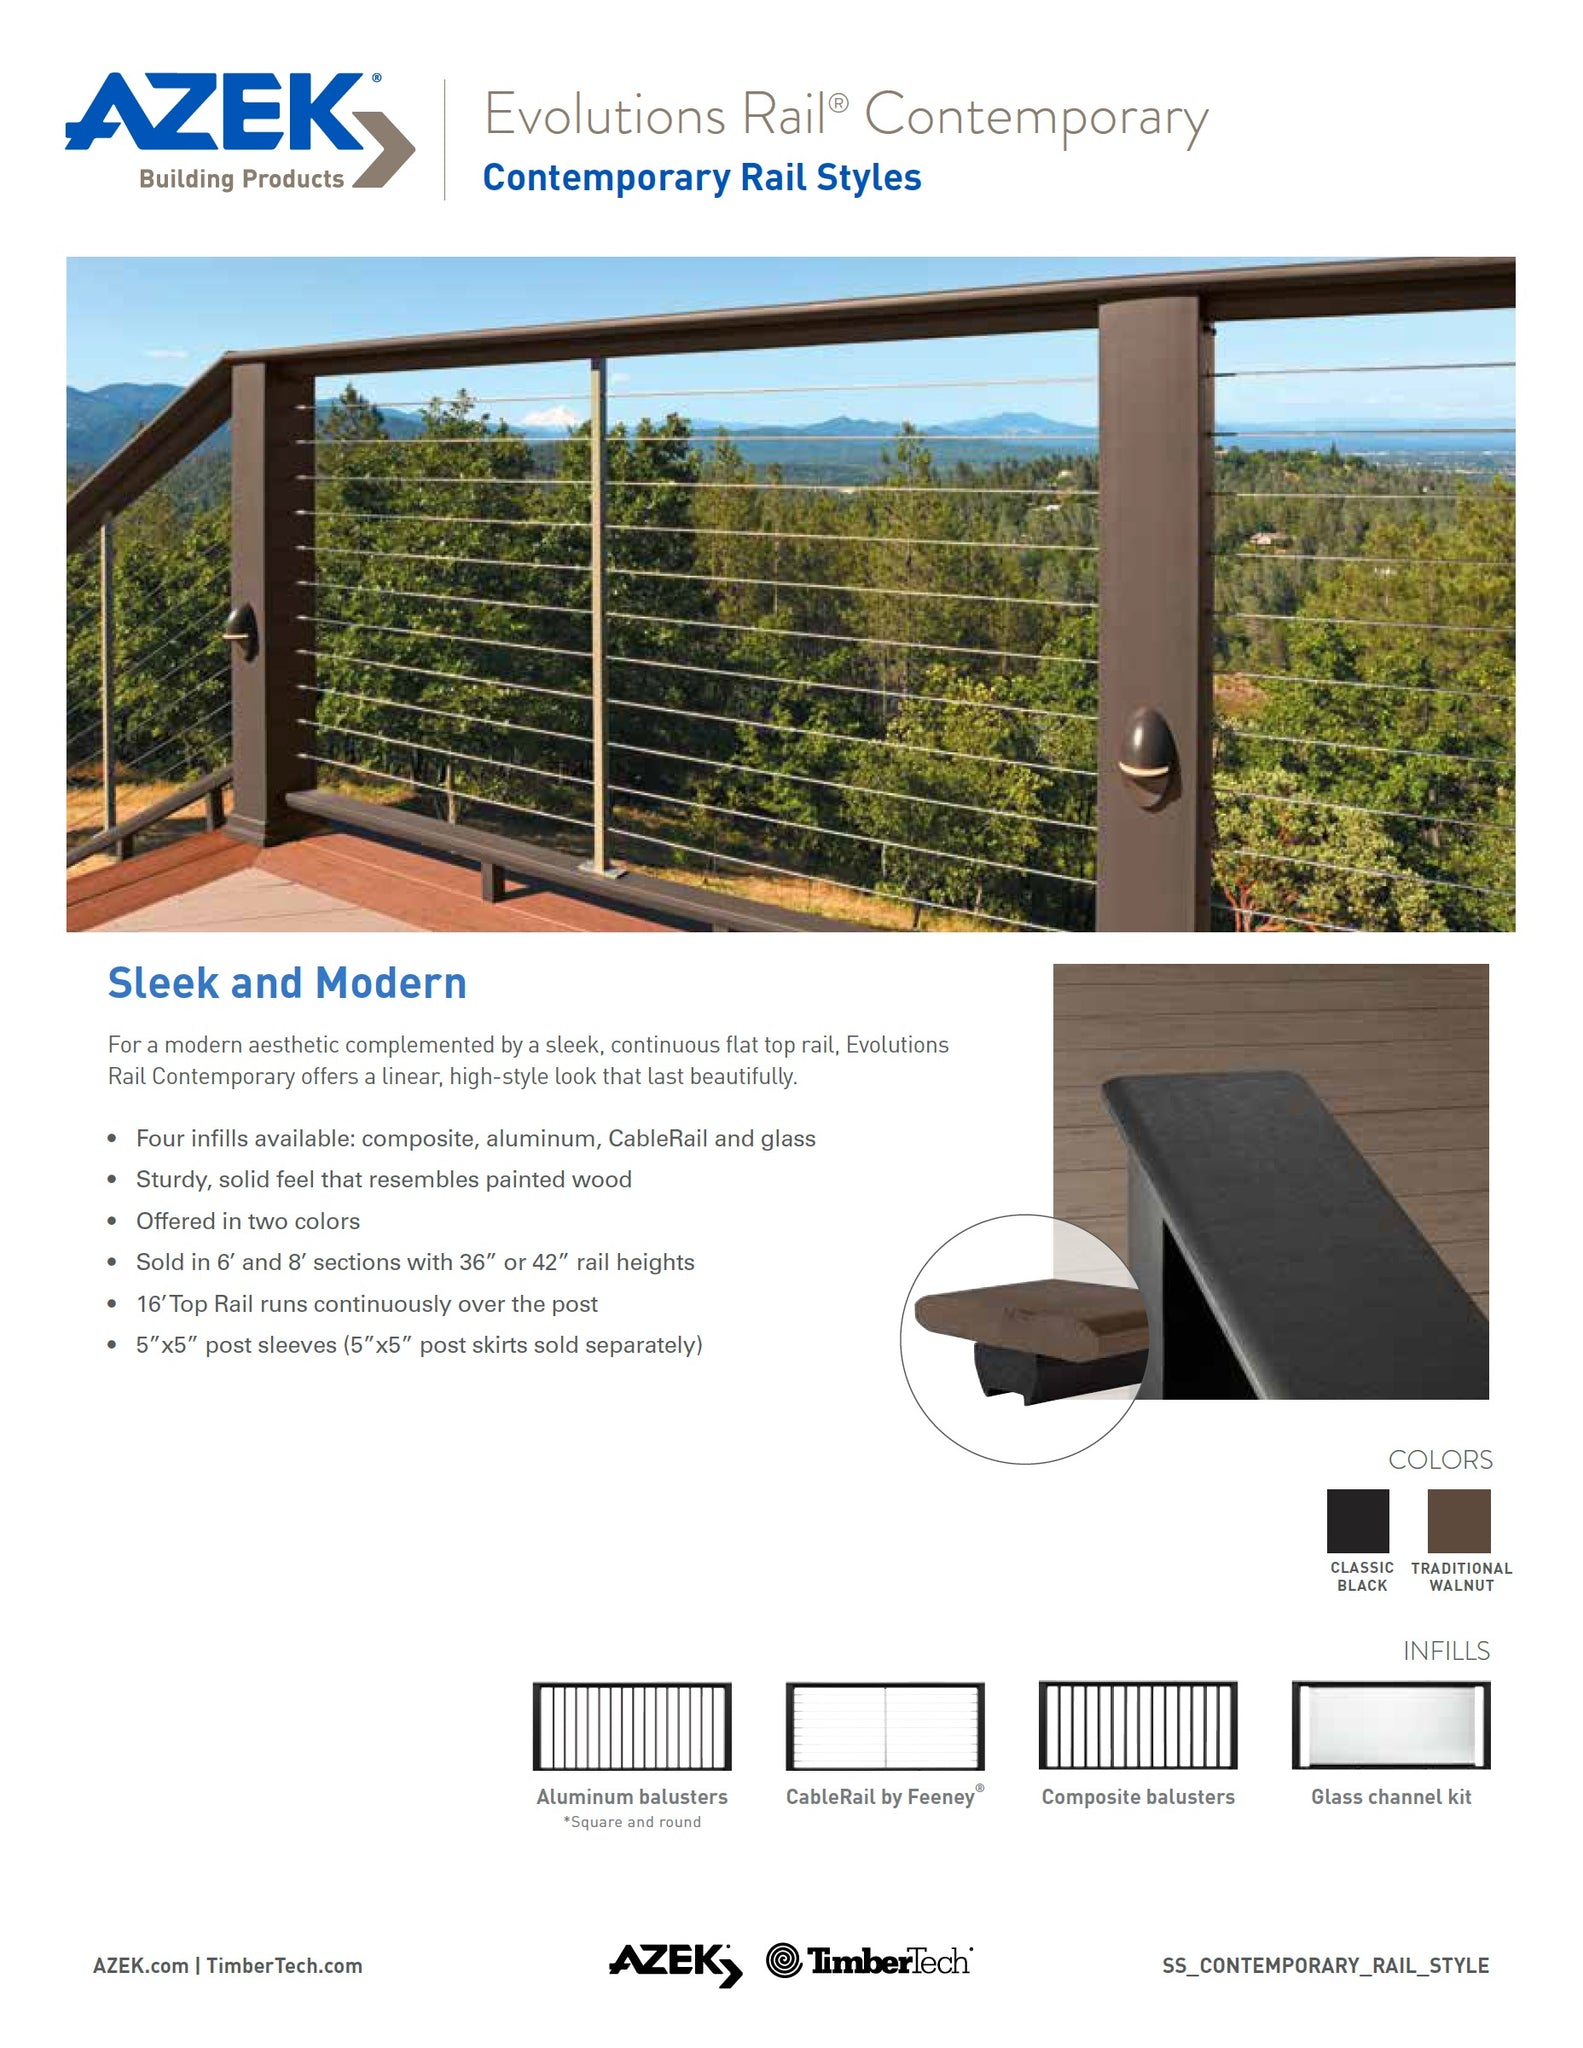 TimberTech Evolutions Contemporary Rail Composite Sleak Railing